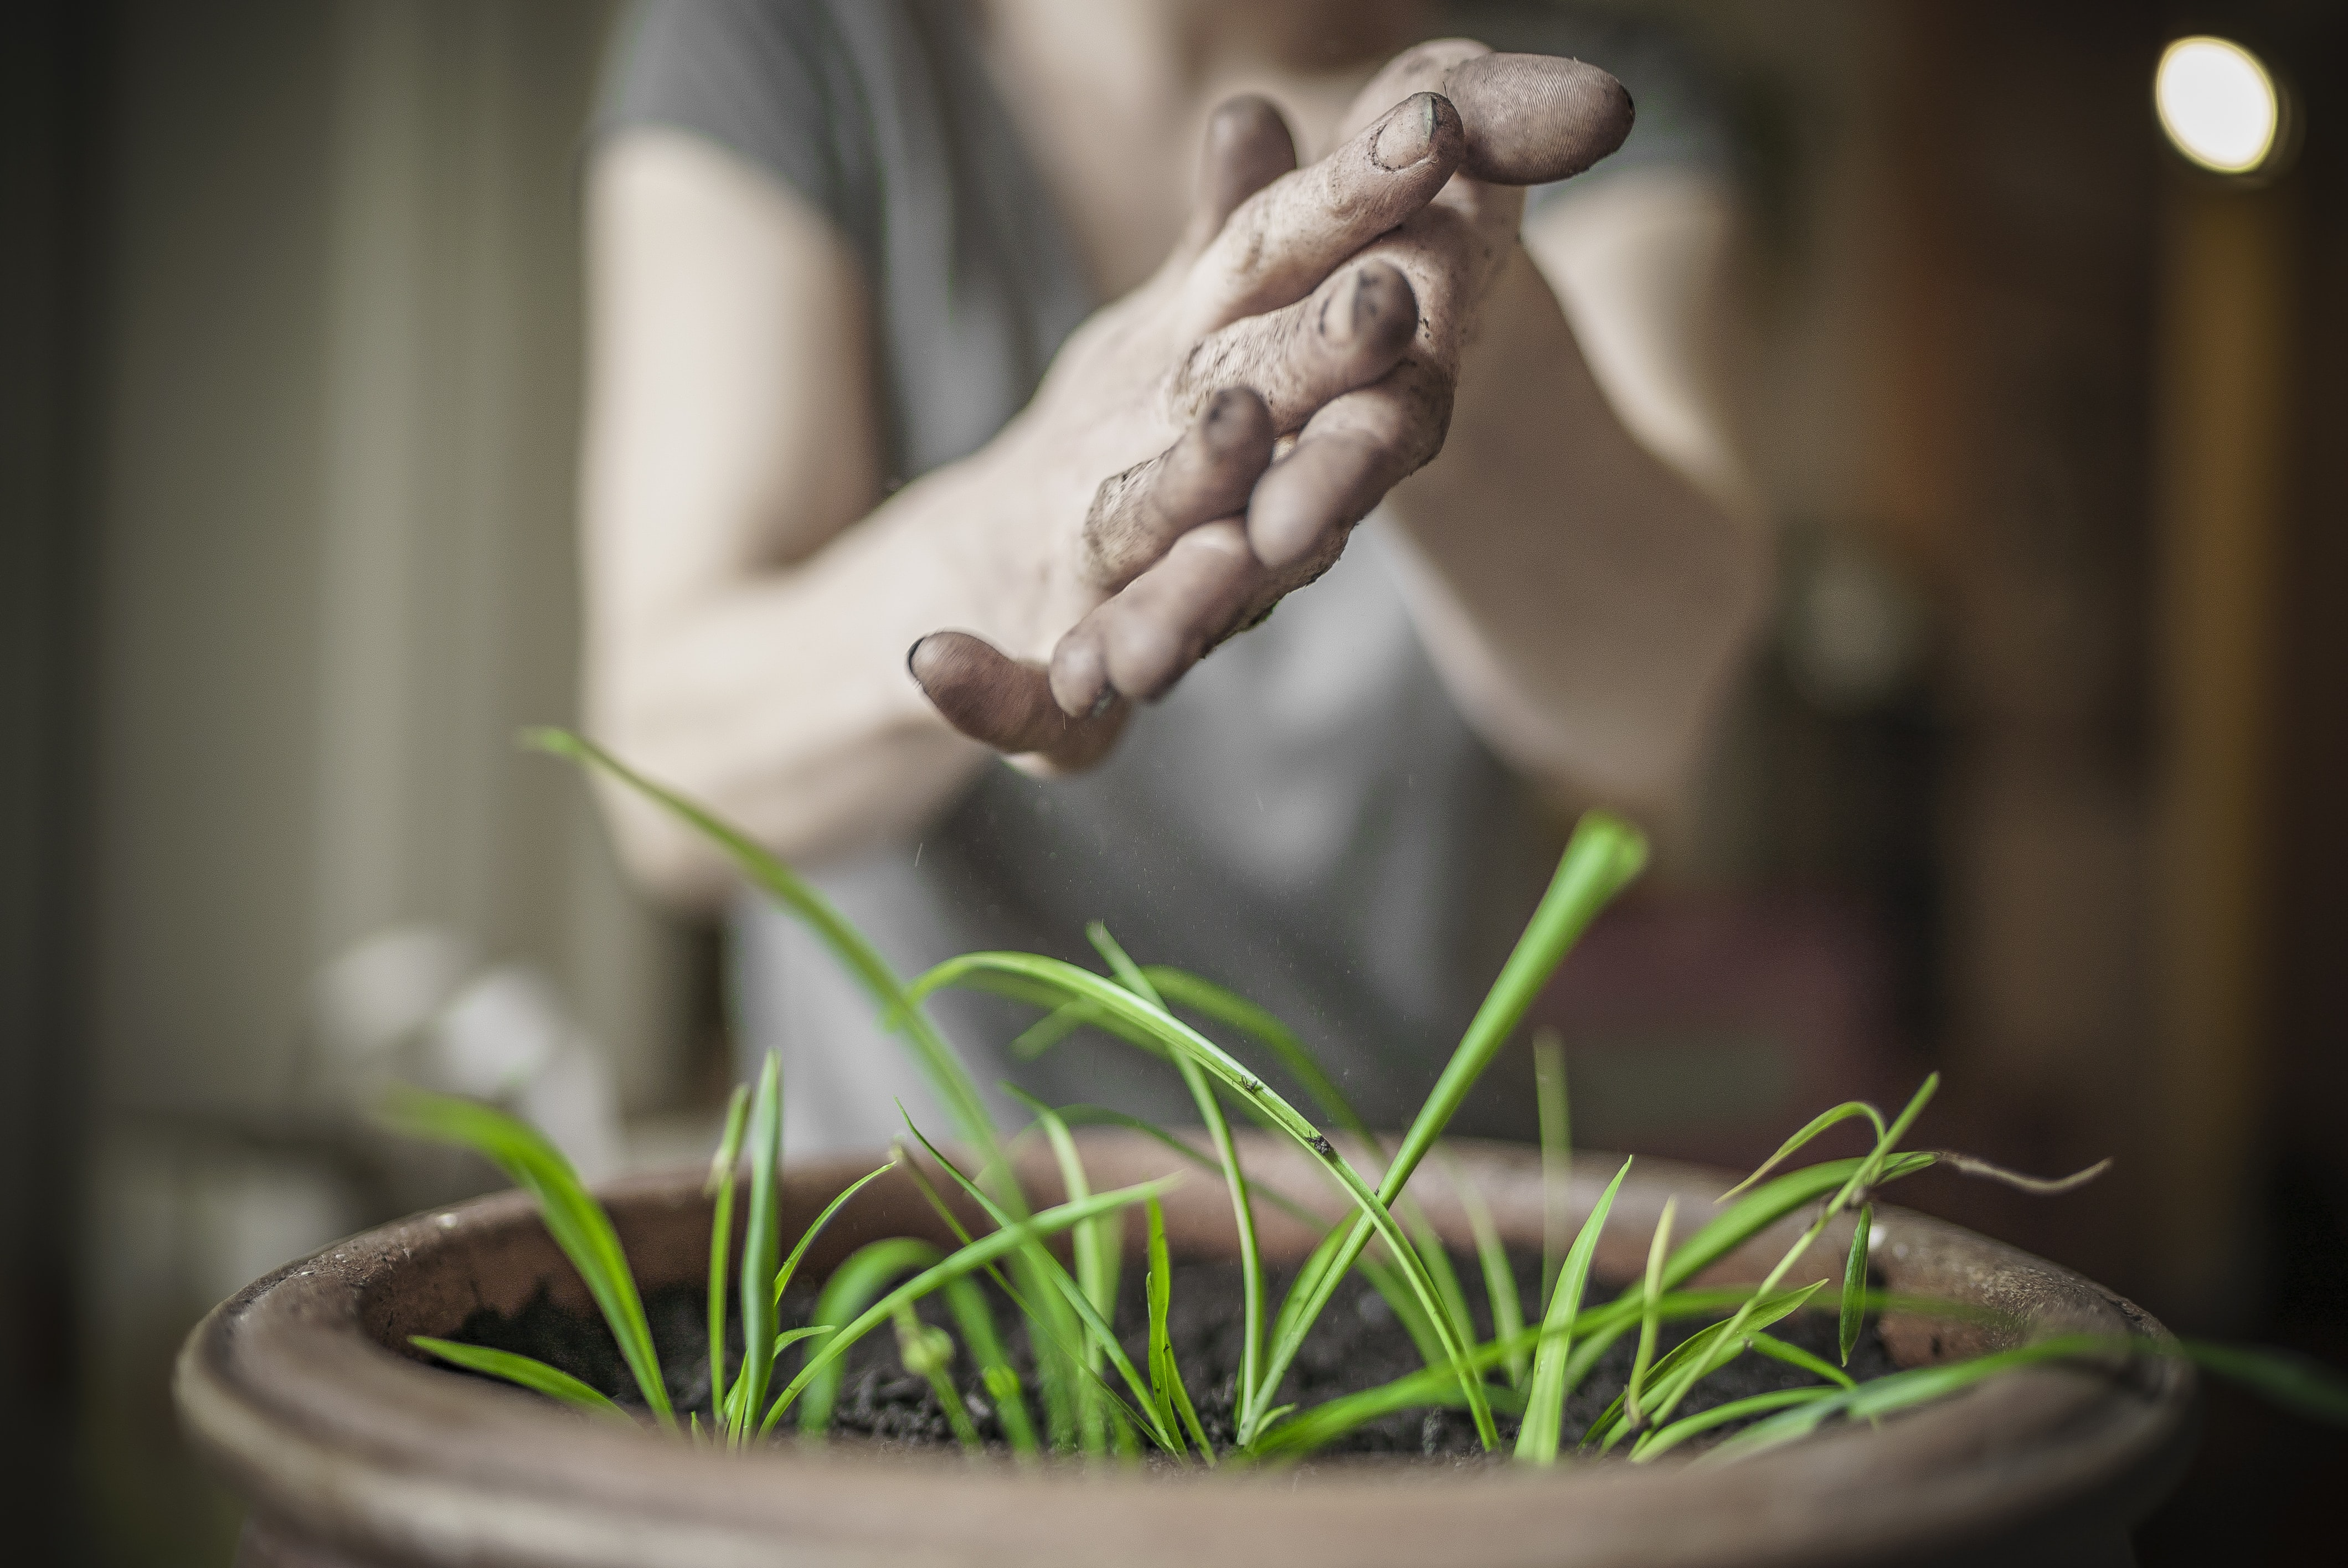 person's hands over green leafed plant